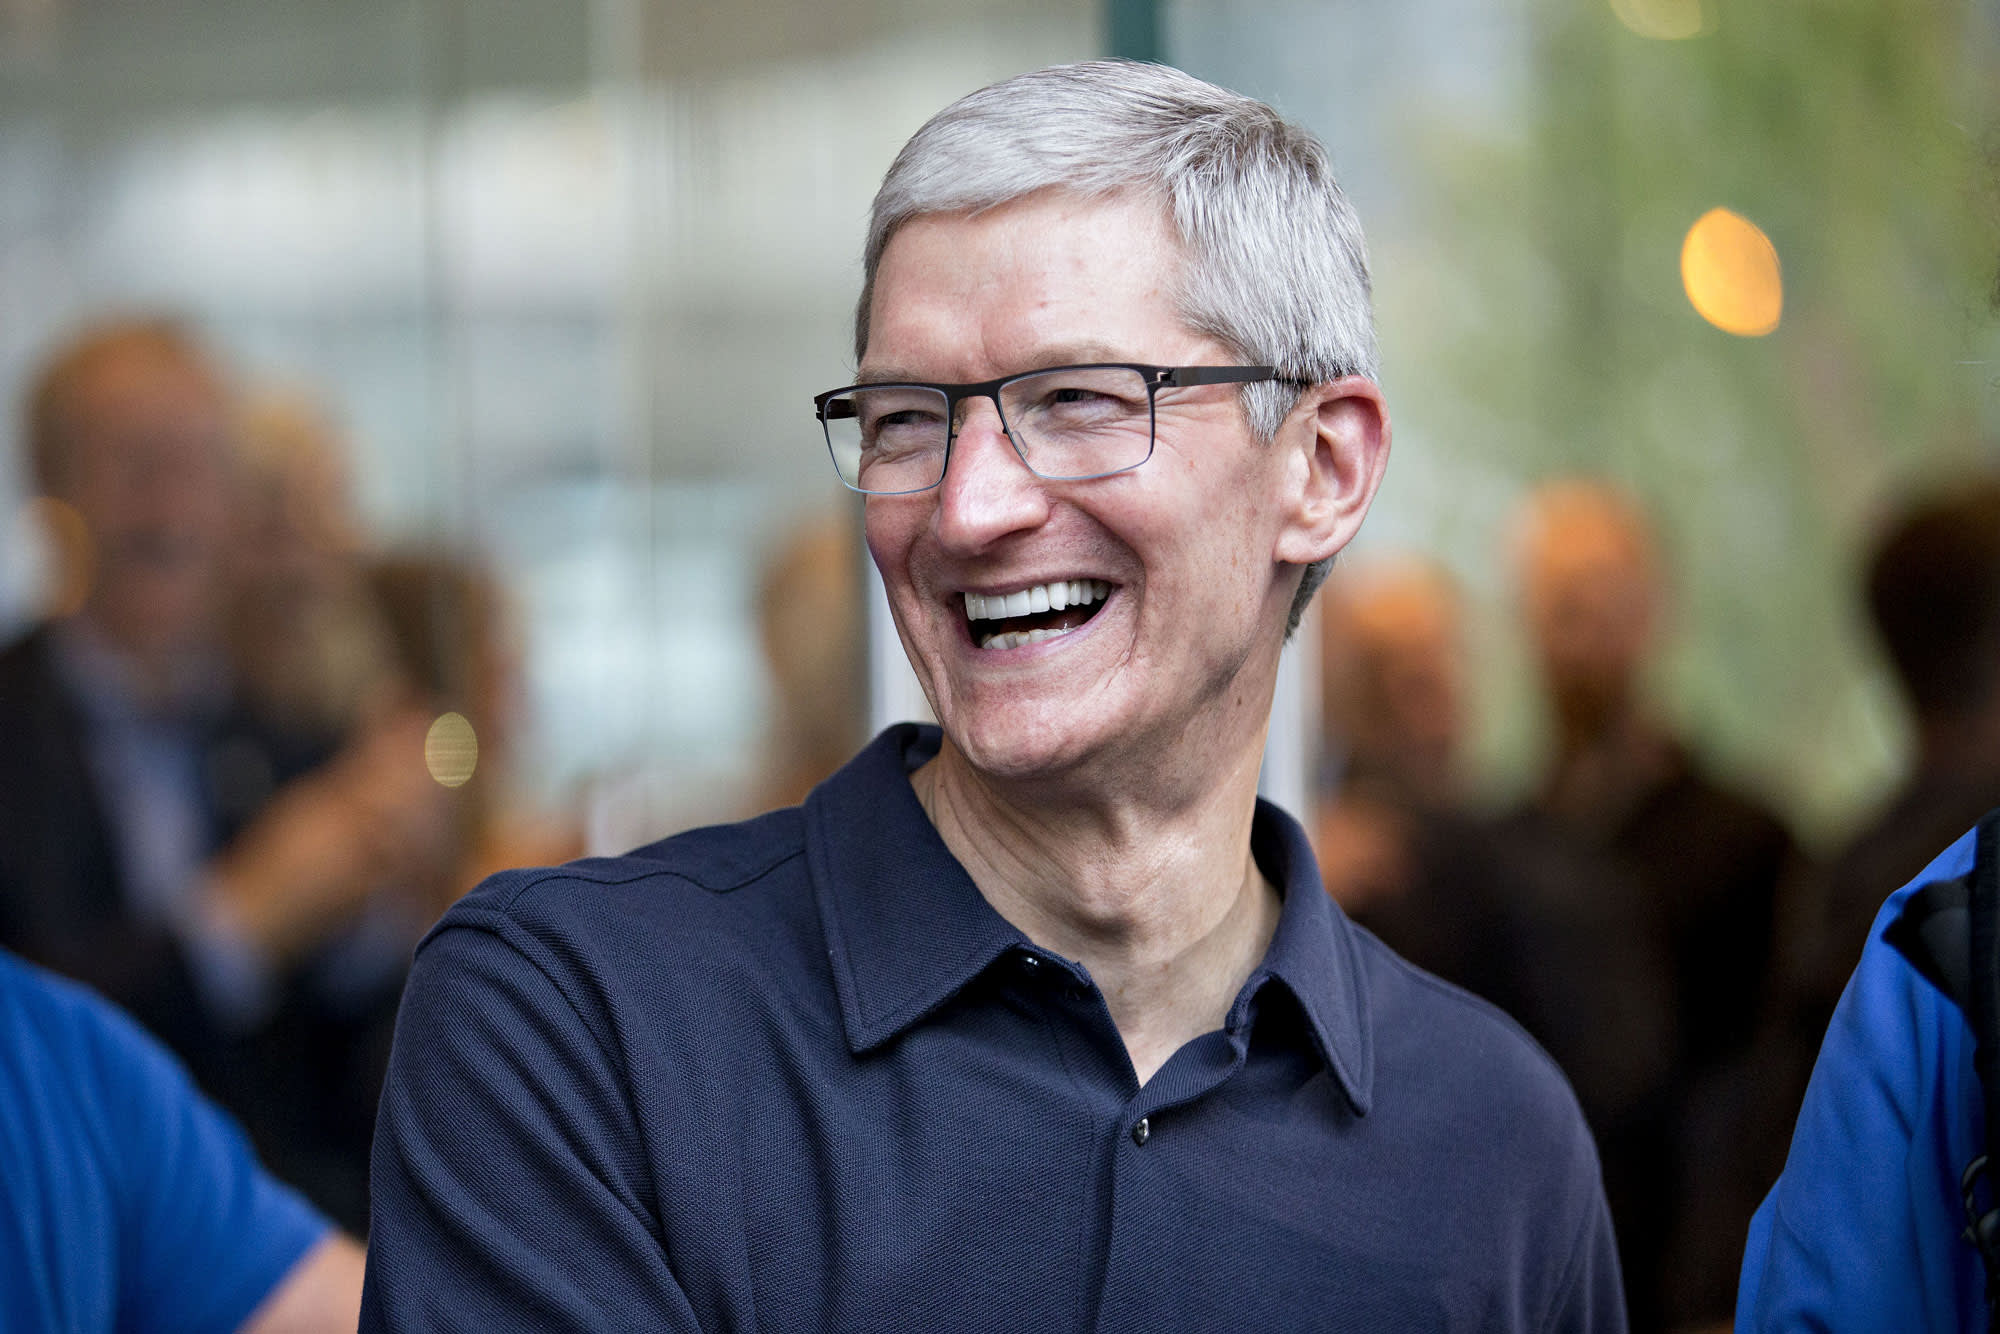 10 highly successful people who wake up before 6 a.m.